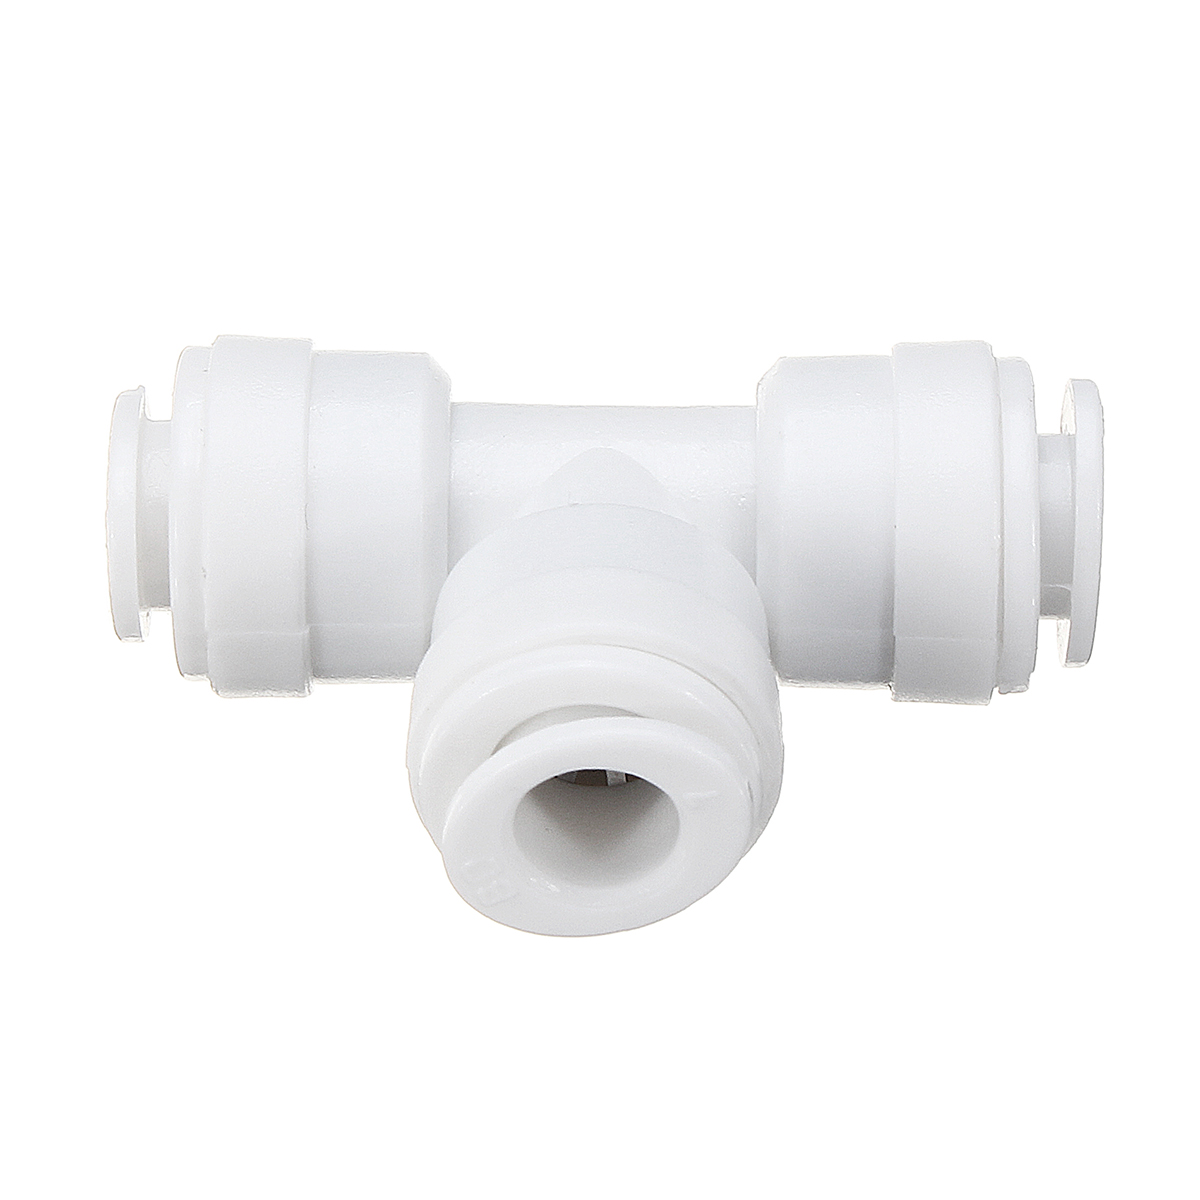 1/4 Inch Tee Type Water Tube Quick Connector Fittings Pipes for Water Filters Water Purifiers